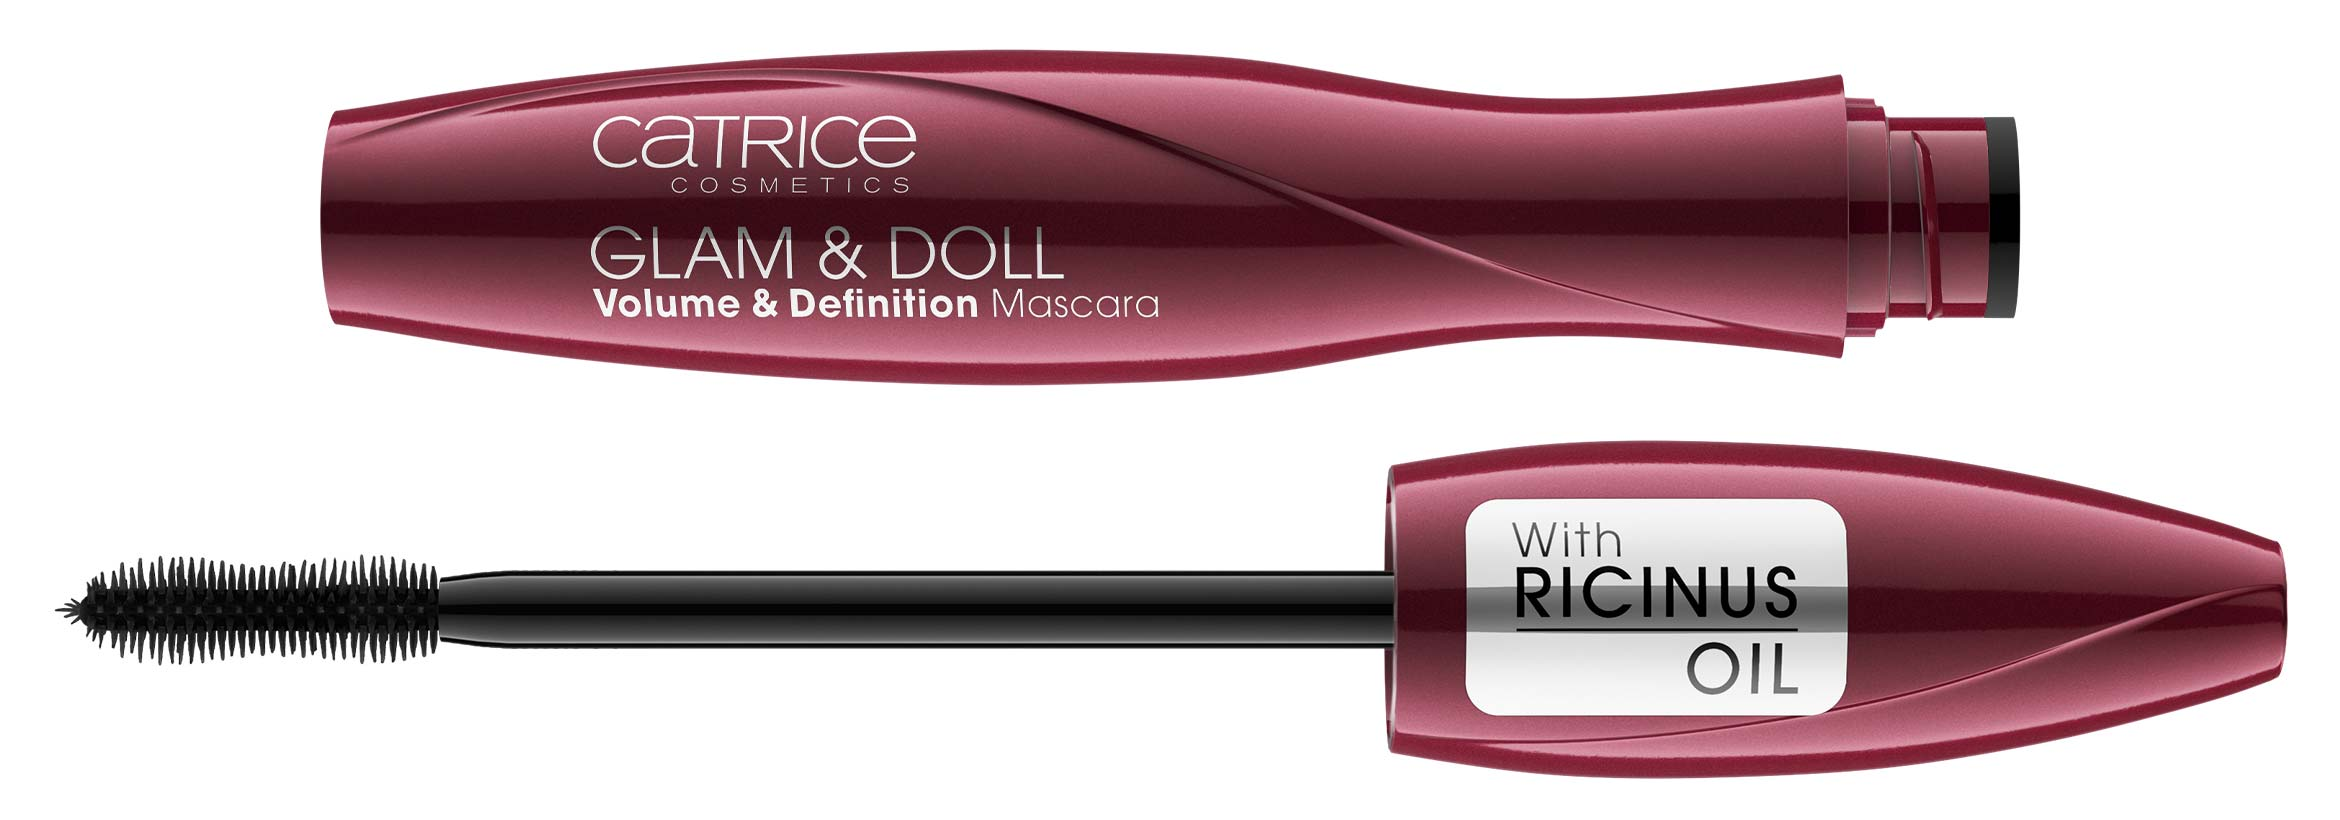 catrice-glam-doll-volume-definition-mascara